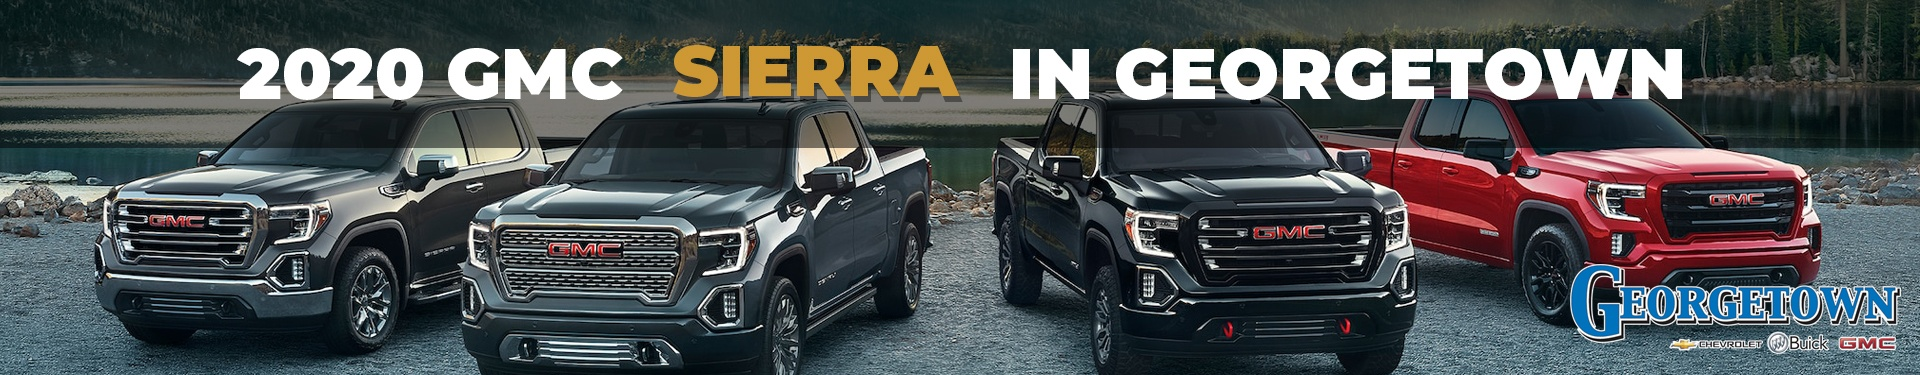 New Trucks in Georgetown. Discover the 2020 GMC Sierra in Georgetown and the Greater Toronto Area from Georgetown Chevrolet.